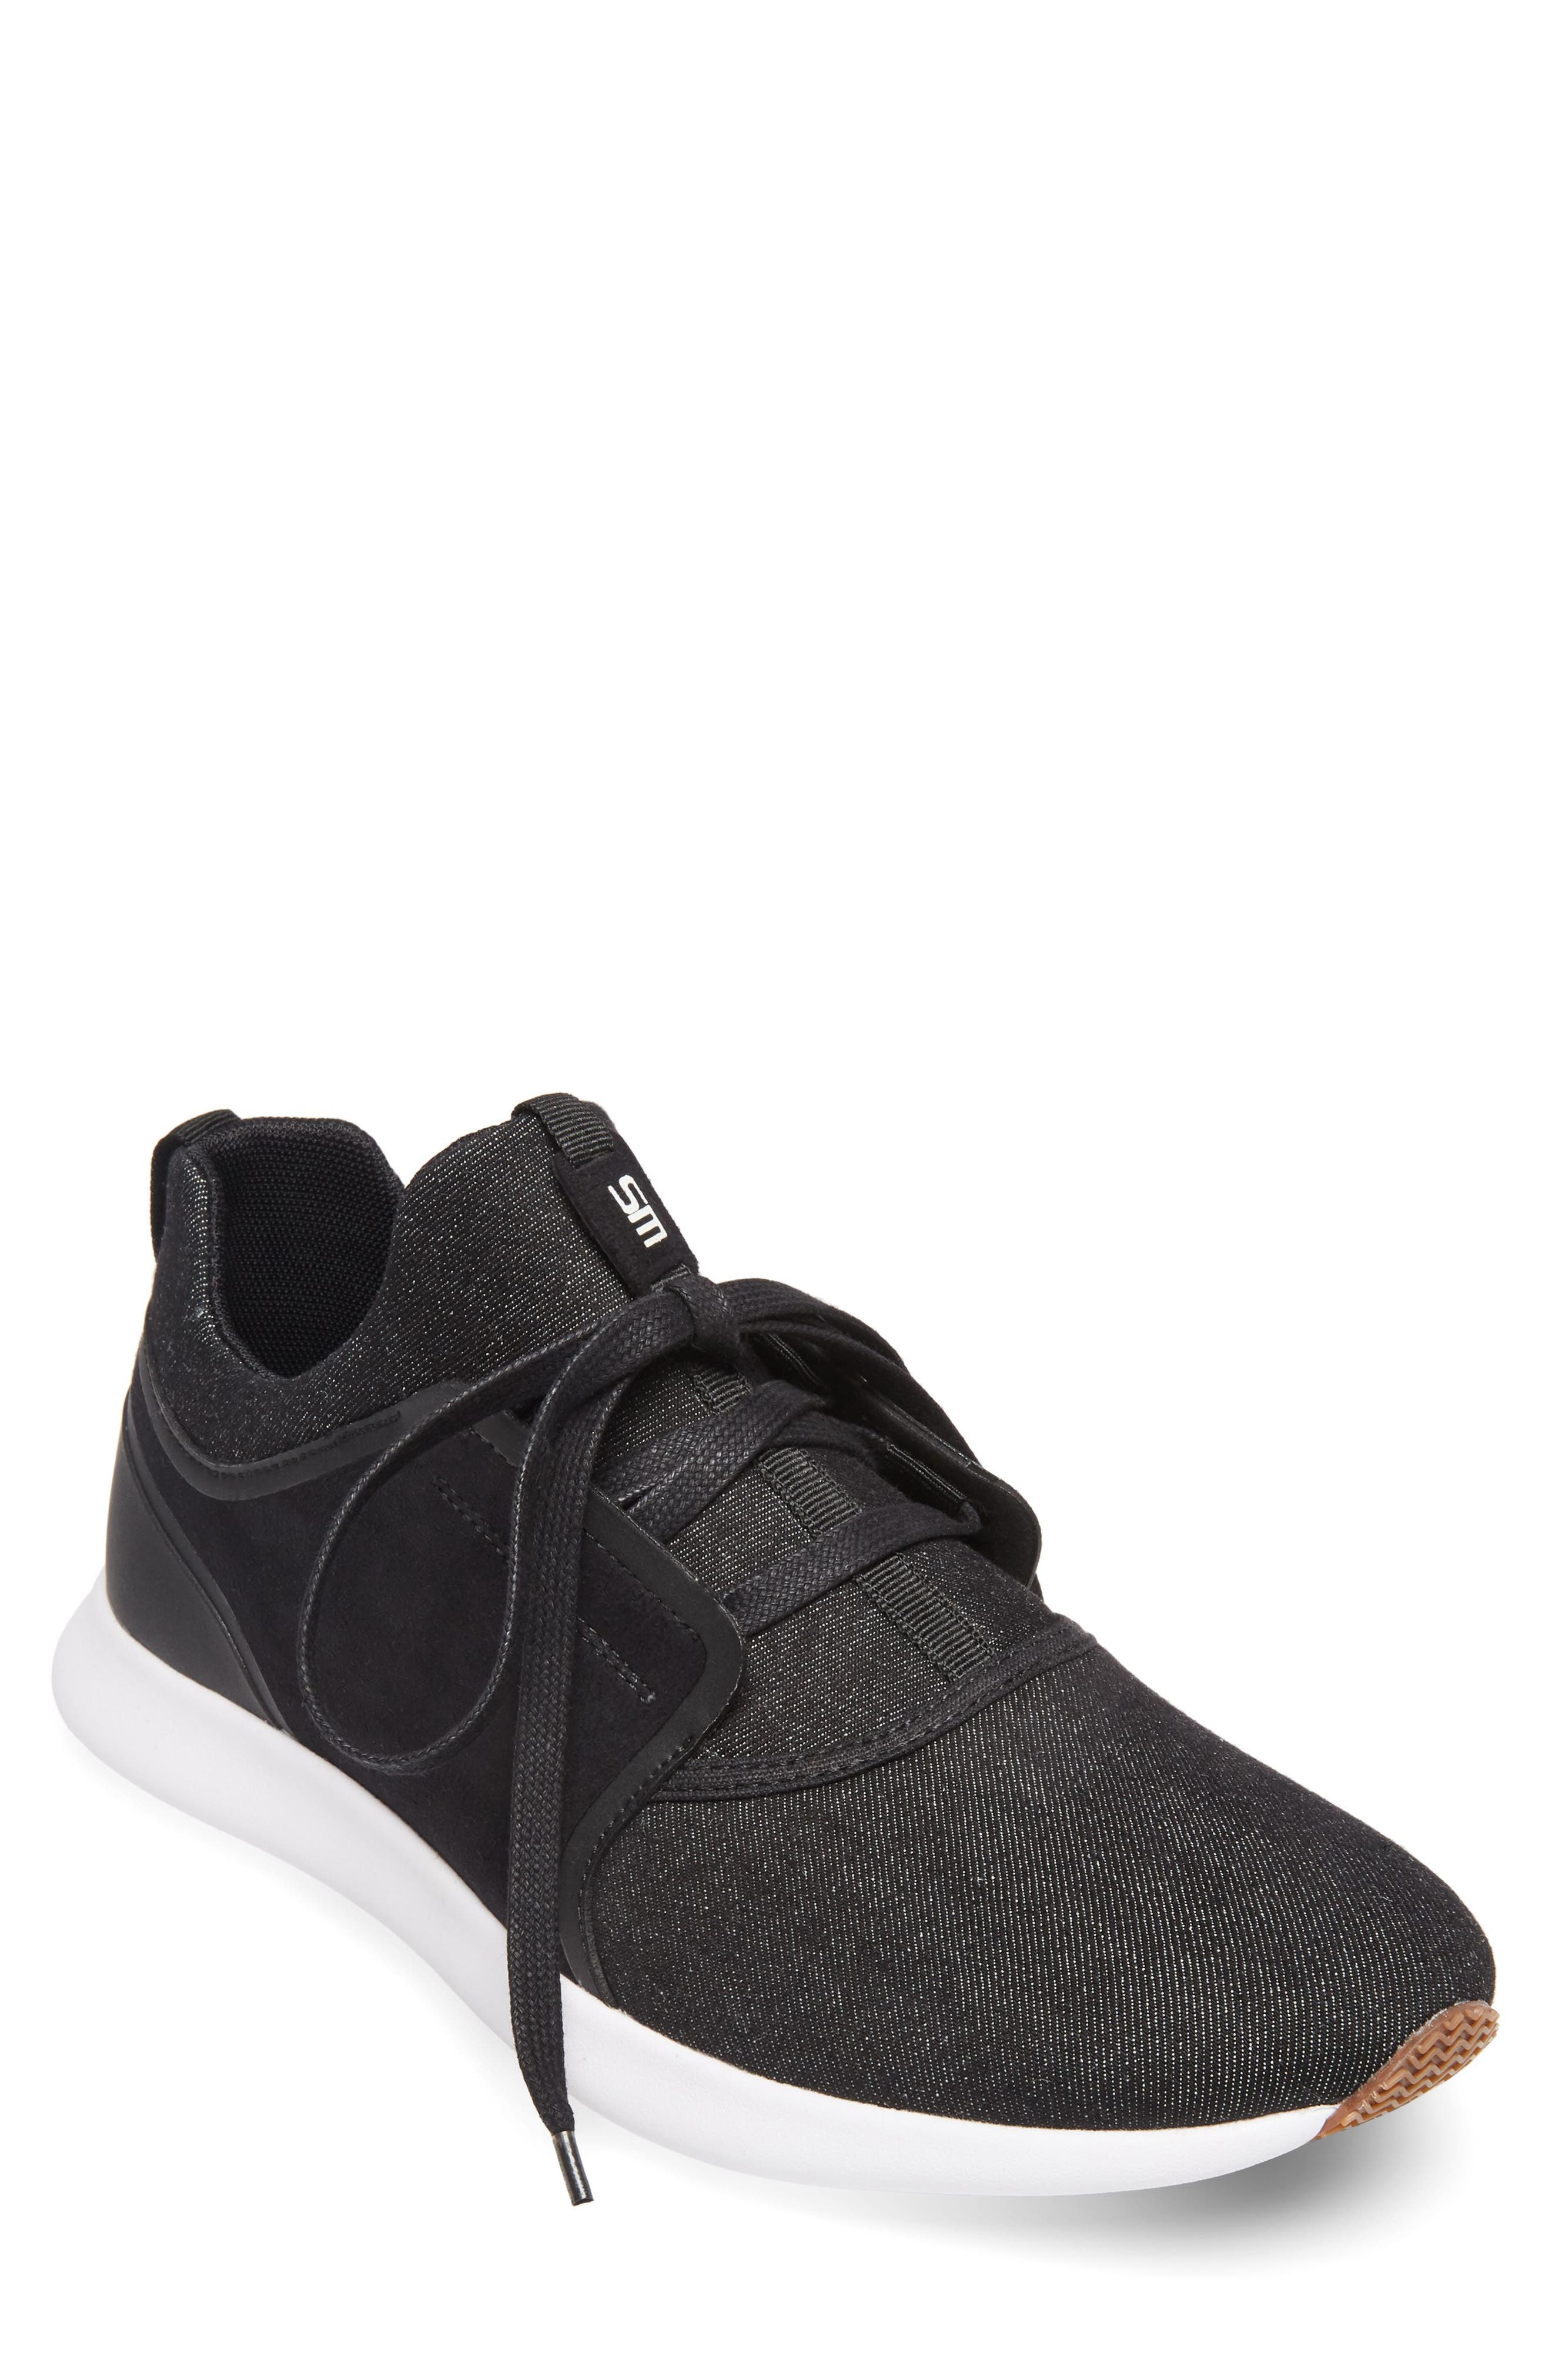 Barrett Sneaker,                             Main thumbnail 1, color,                             002